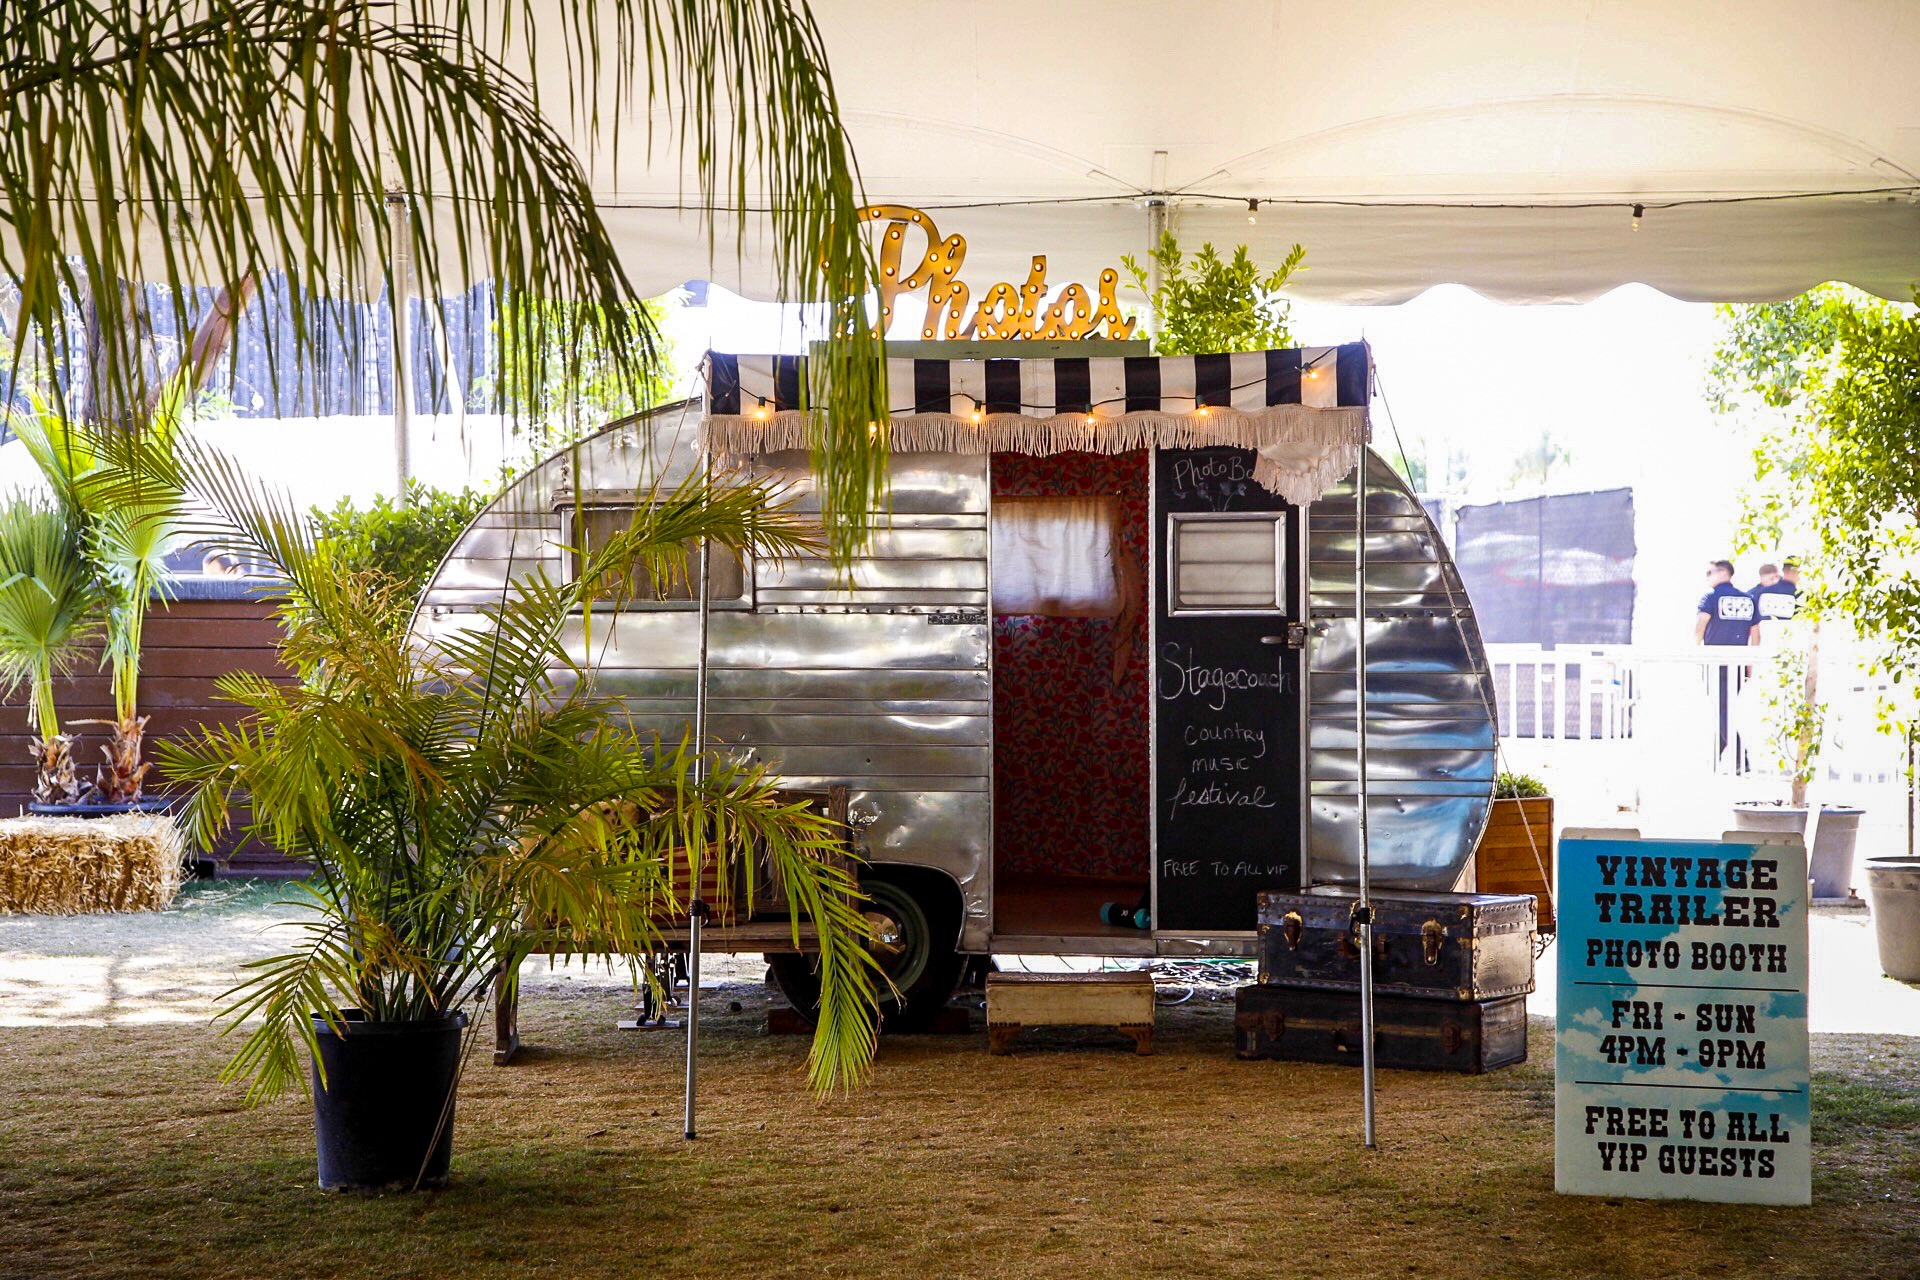 Silver vintage photo booth trailer that can be custom branded for your wedding, corporate event or experiential marketing campaign. Perfect for festivals, celebrations and large or intimate events.